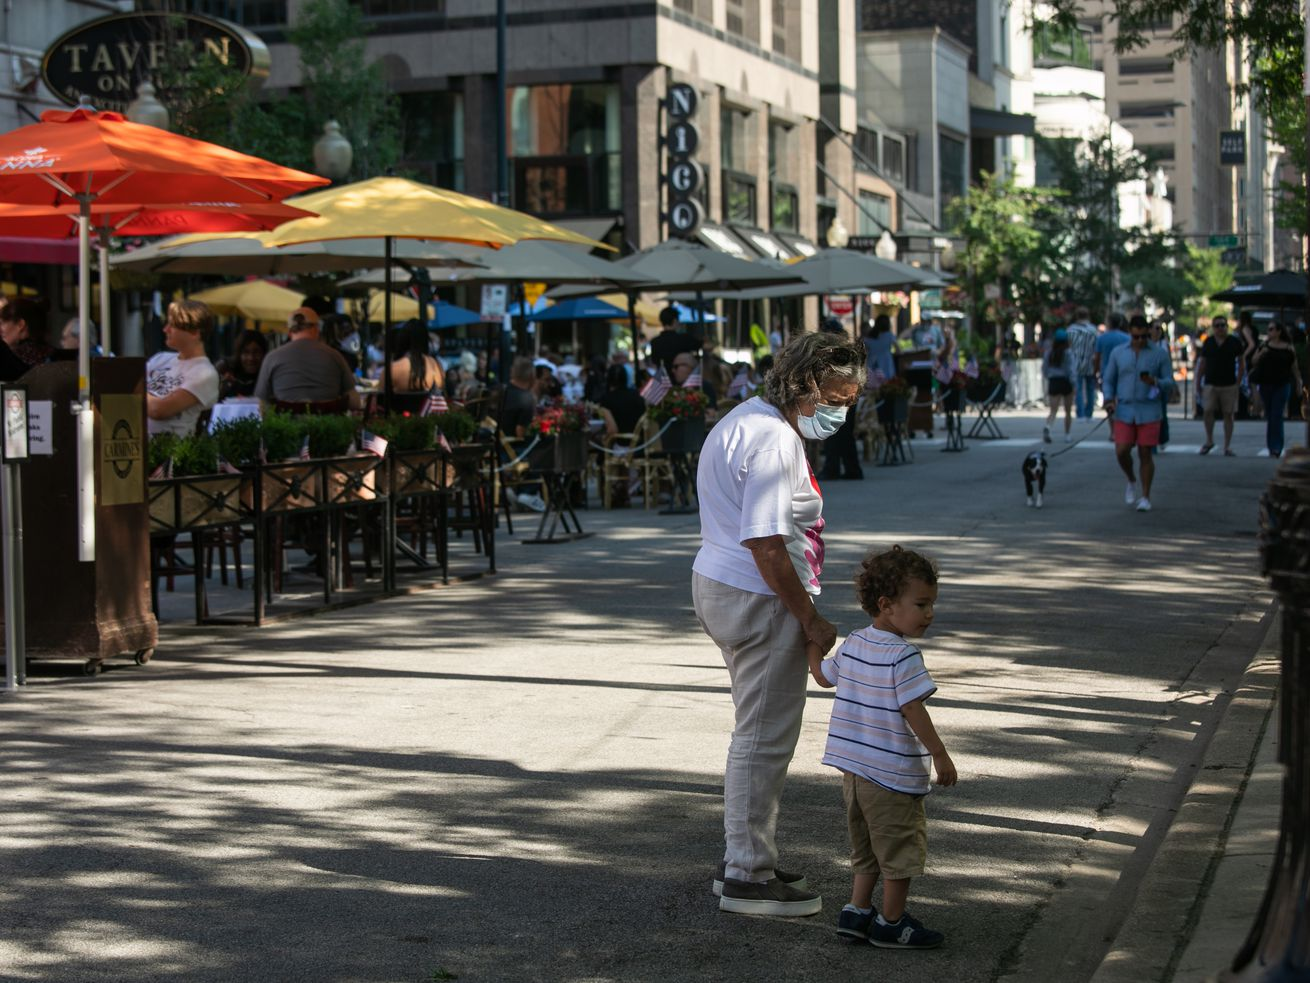 A woman and child pass by Tavern on Rush, where dozens of diners crowded the street. Many say they're eager to go to bars and restaurants again now that COVID-19 restrictions in Chicago and statewide have been lifted.